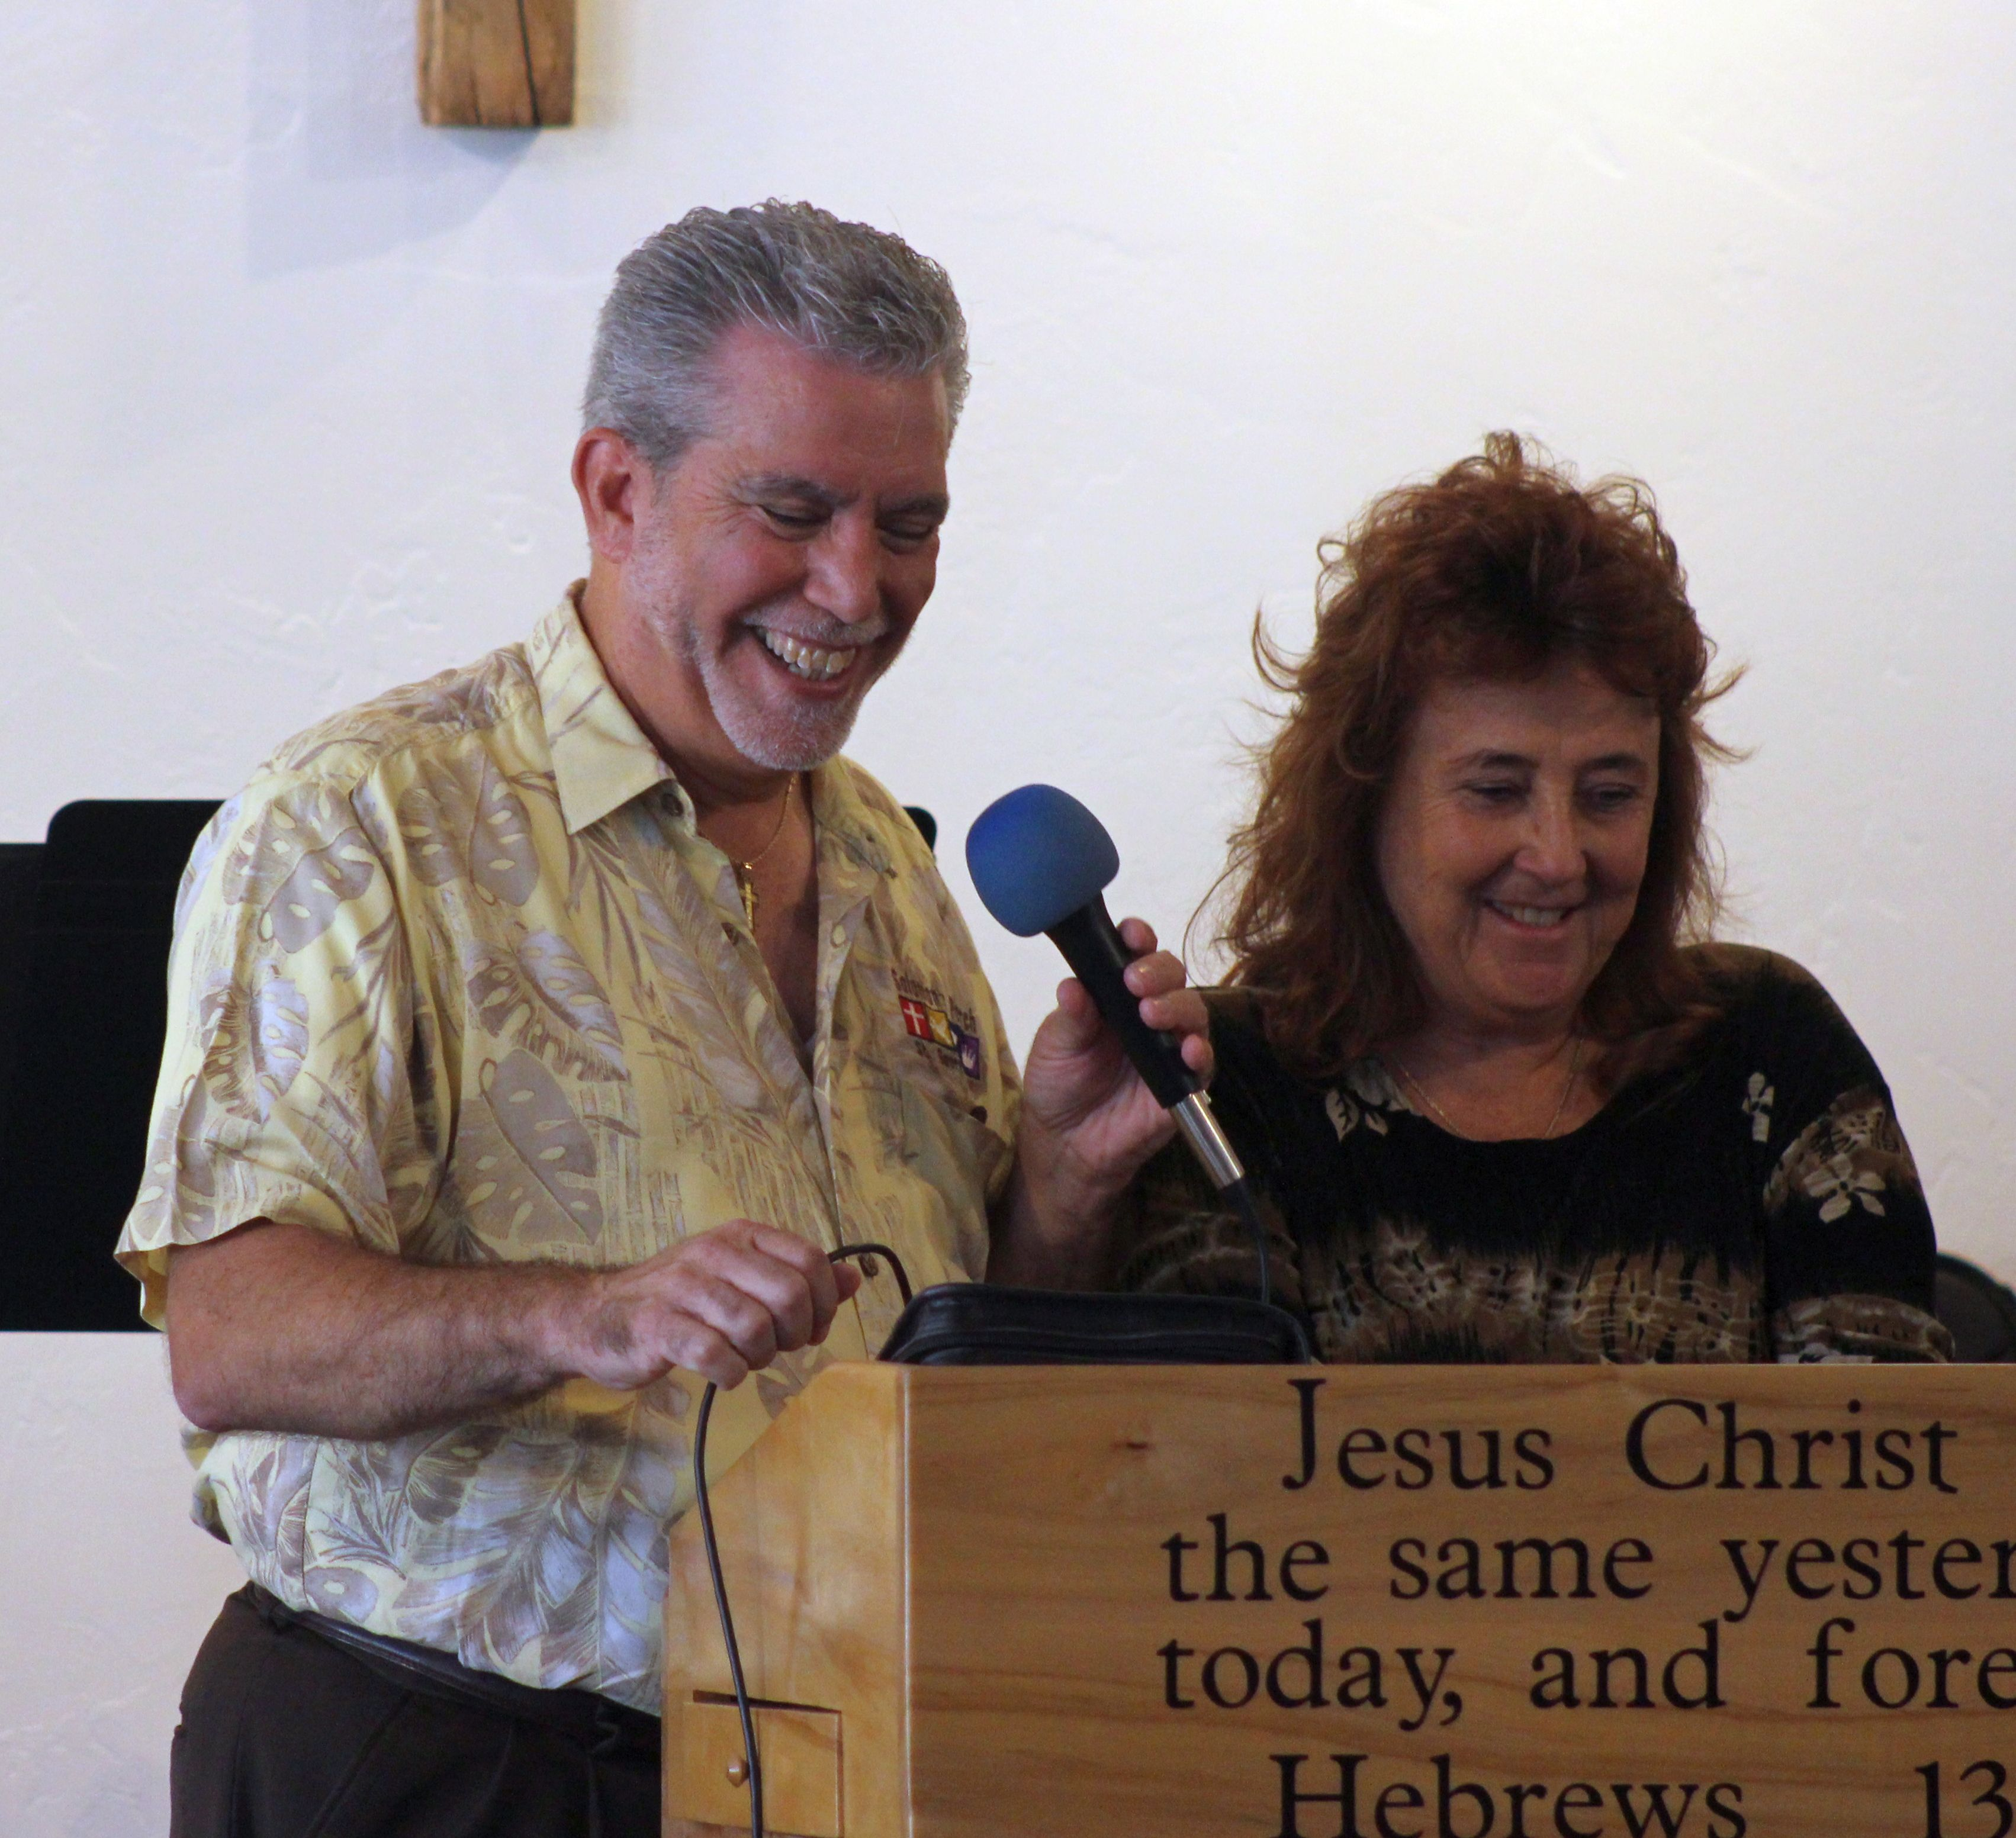 L-R Revs. Jimi and Rickene Kestin at the pulpit of SOlomon's Porch Foursquare Fellowship, St. George, Utah, Oct. 9, 2016 | Photo by Ric Wayman, St. George News